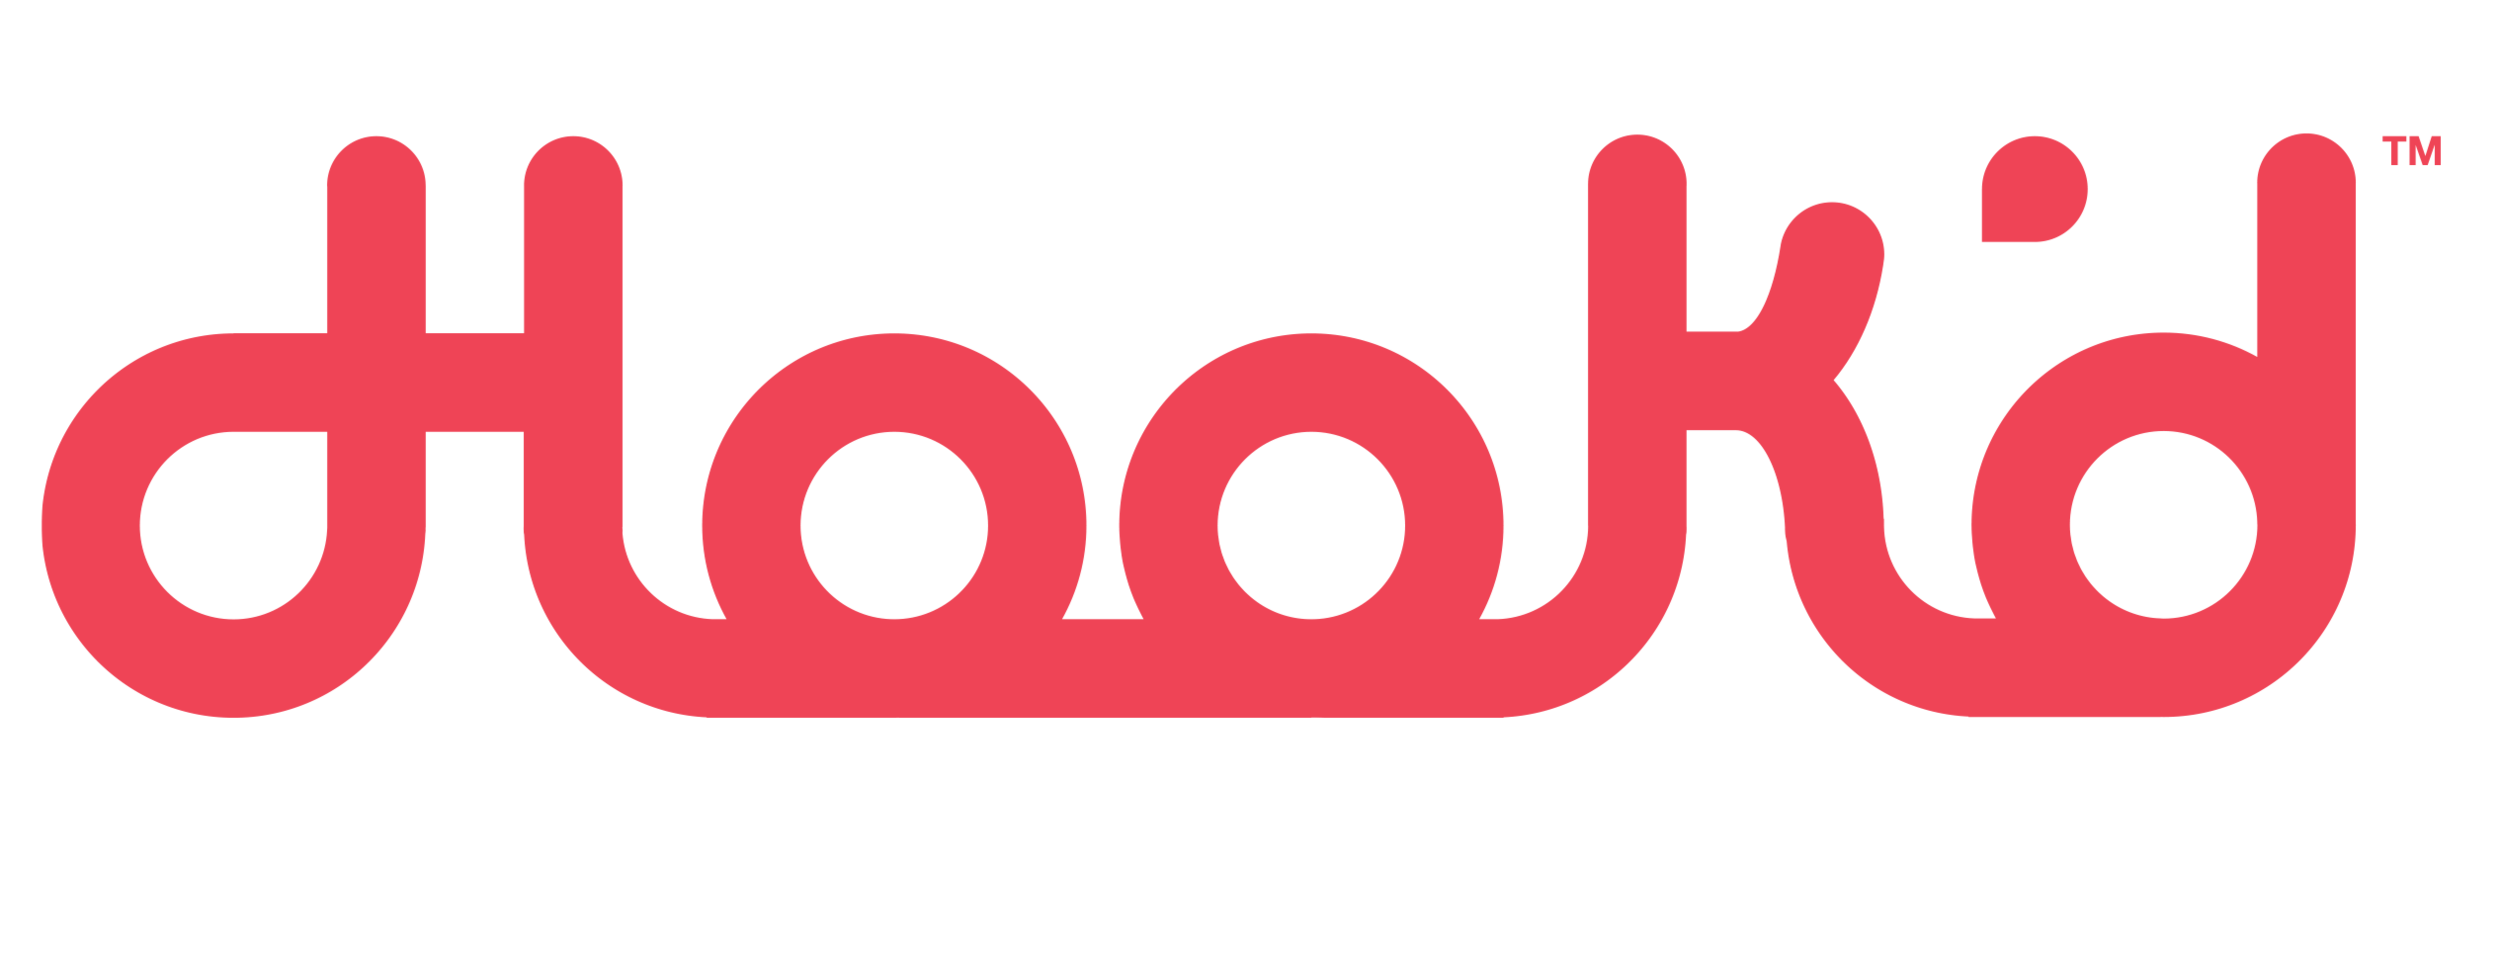 hookd-wordmark-trademark1-e1421957473342.png